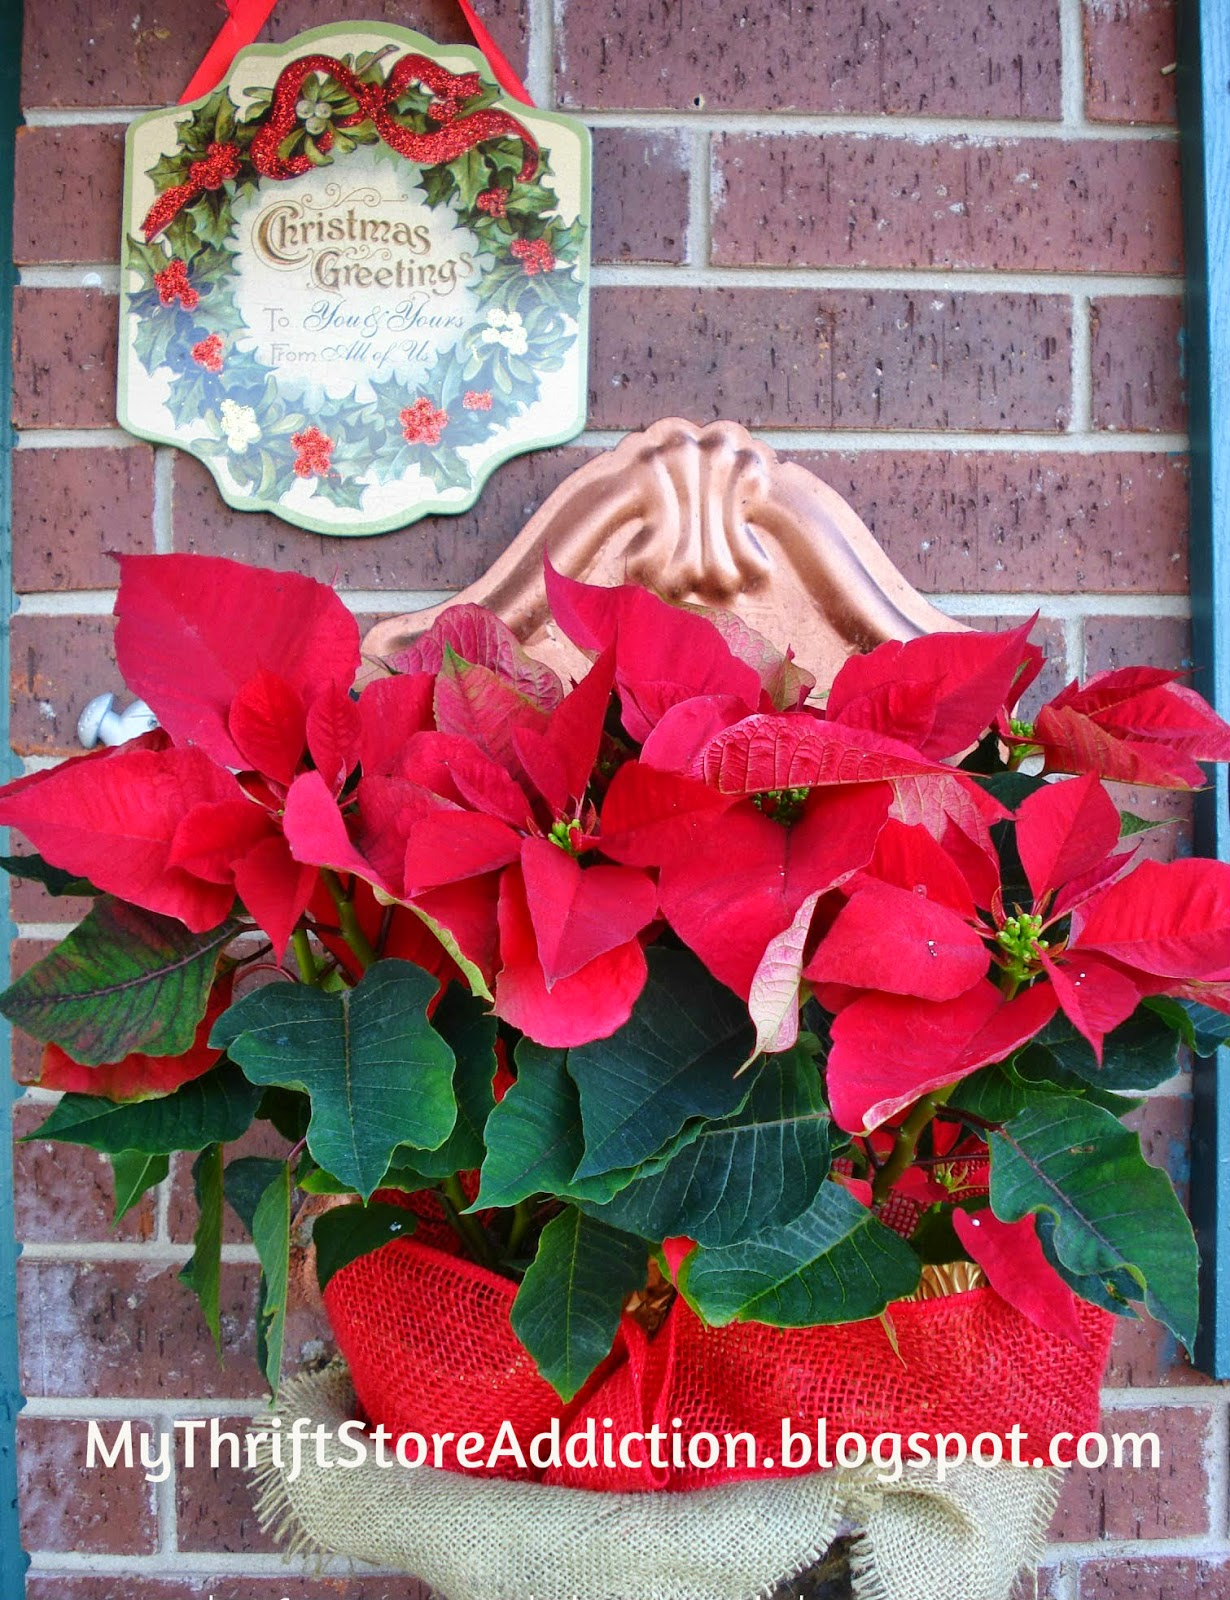 Repurpose fountains for poinsettias